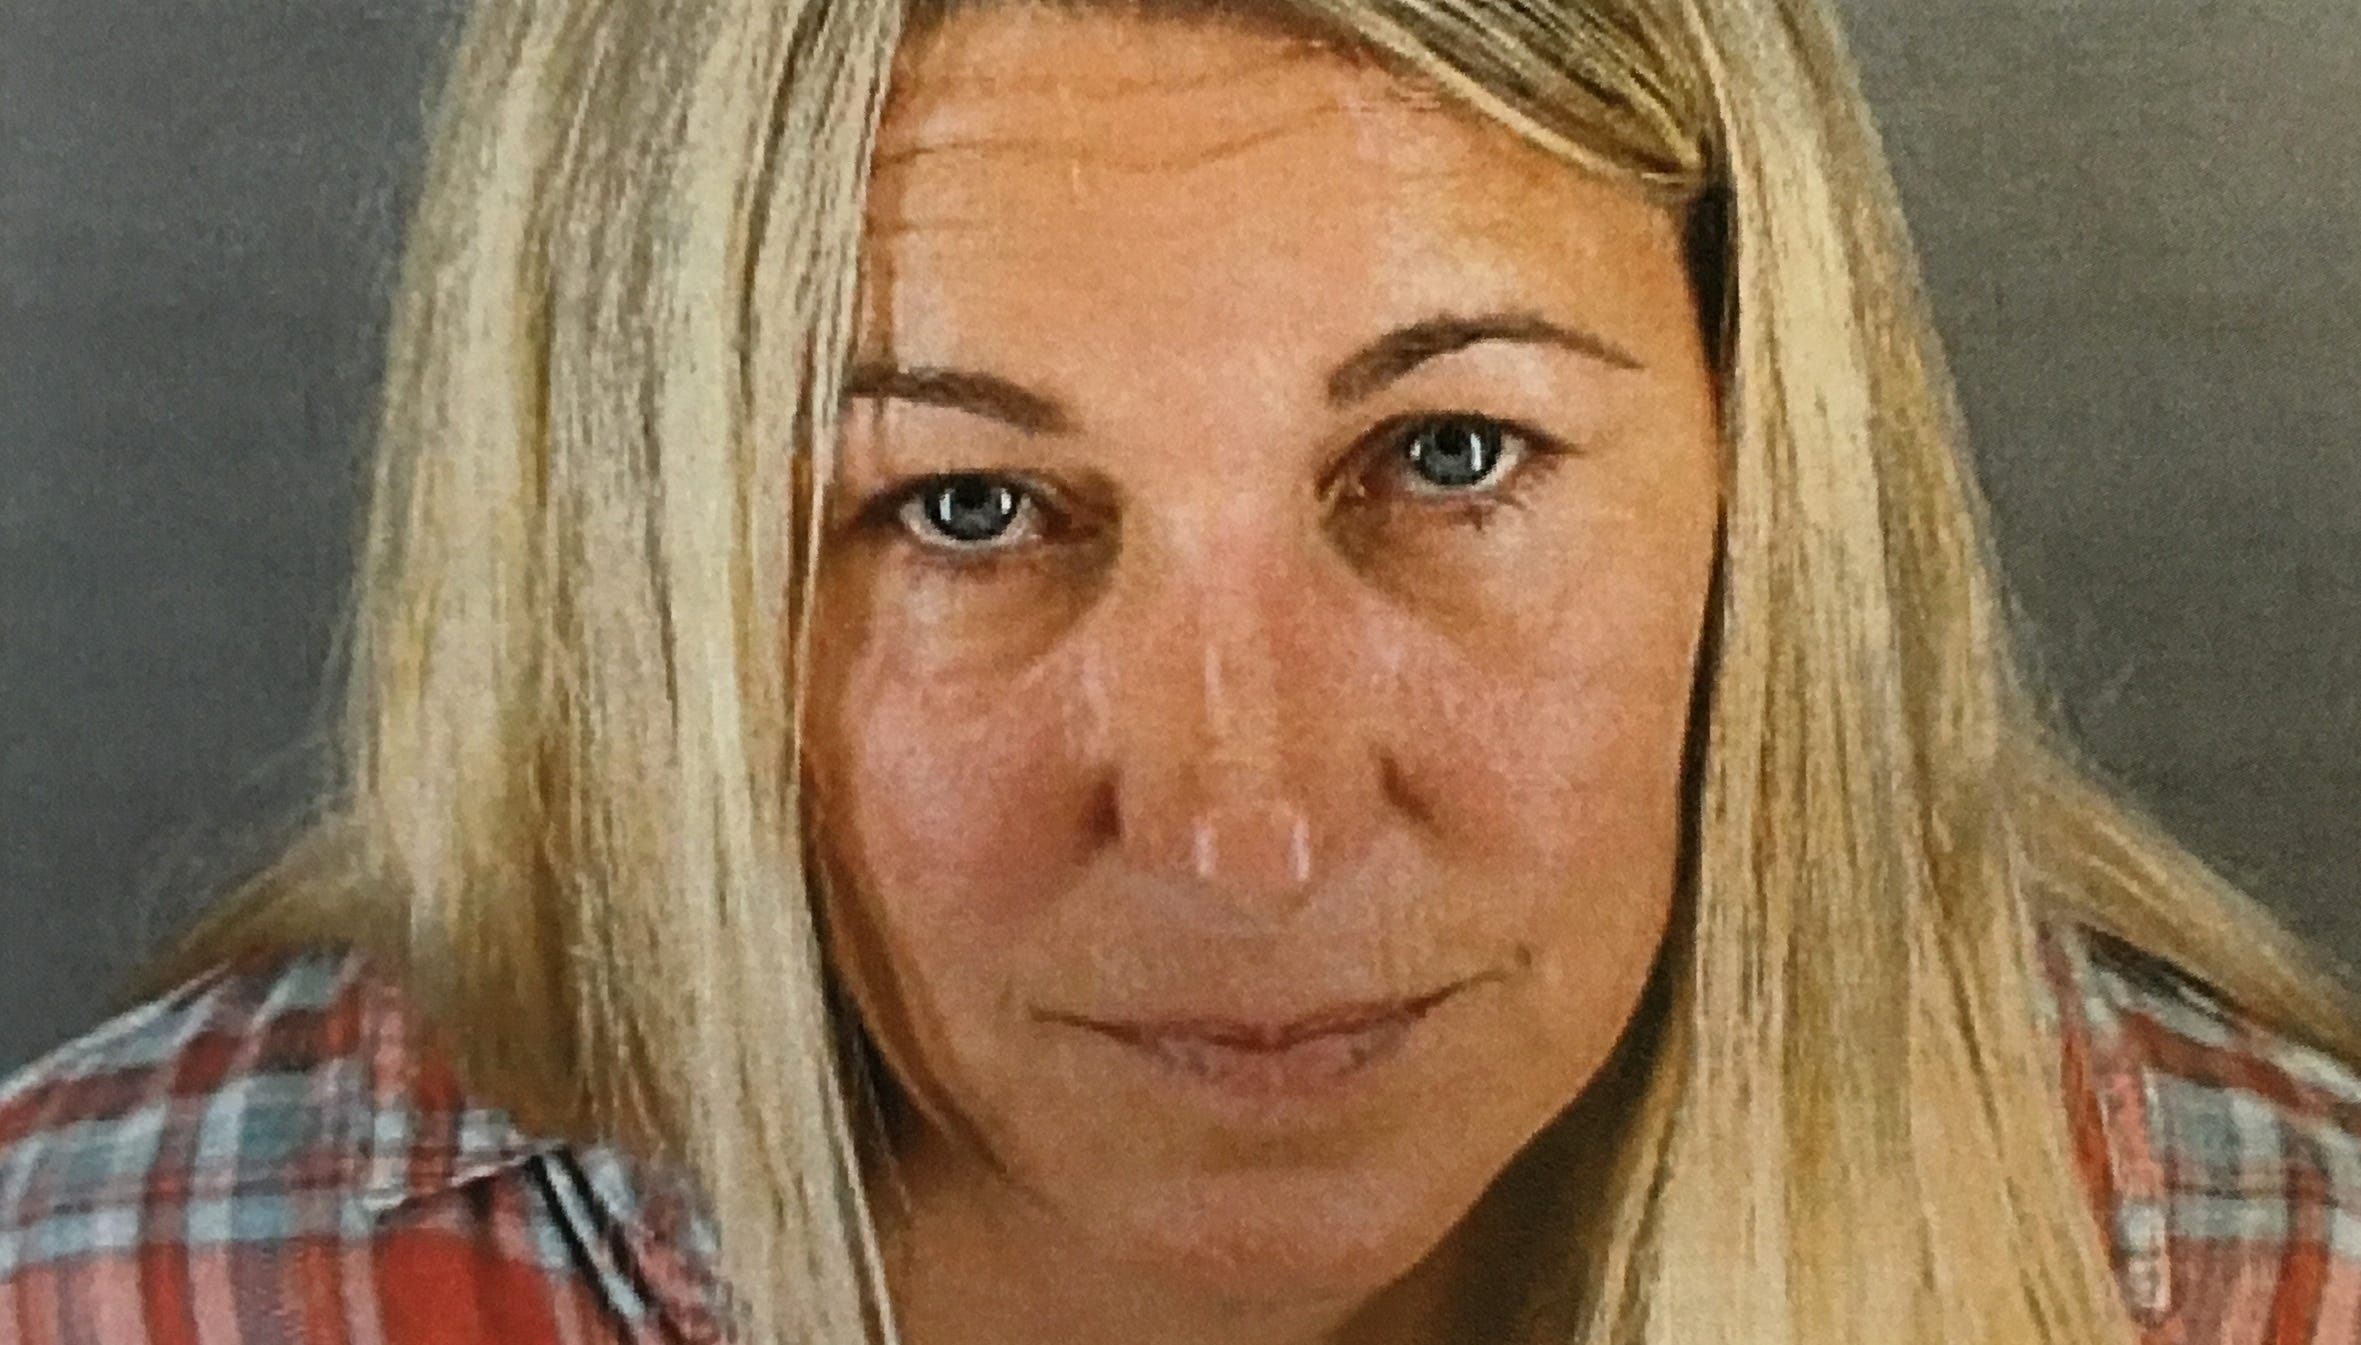 Booking photo of Julie McDonald, who is running for judge unopposed in Oakland County Circuit Court, was arrested in Royal Oak in September and charged with operating while intoxicated.